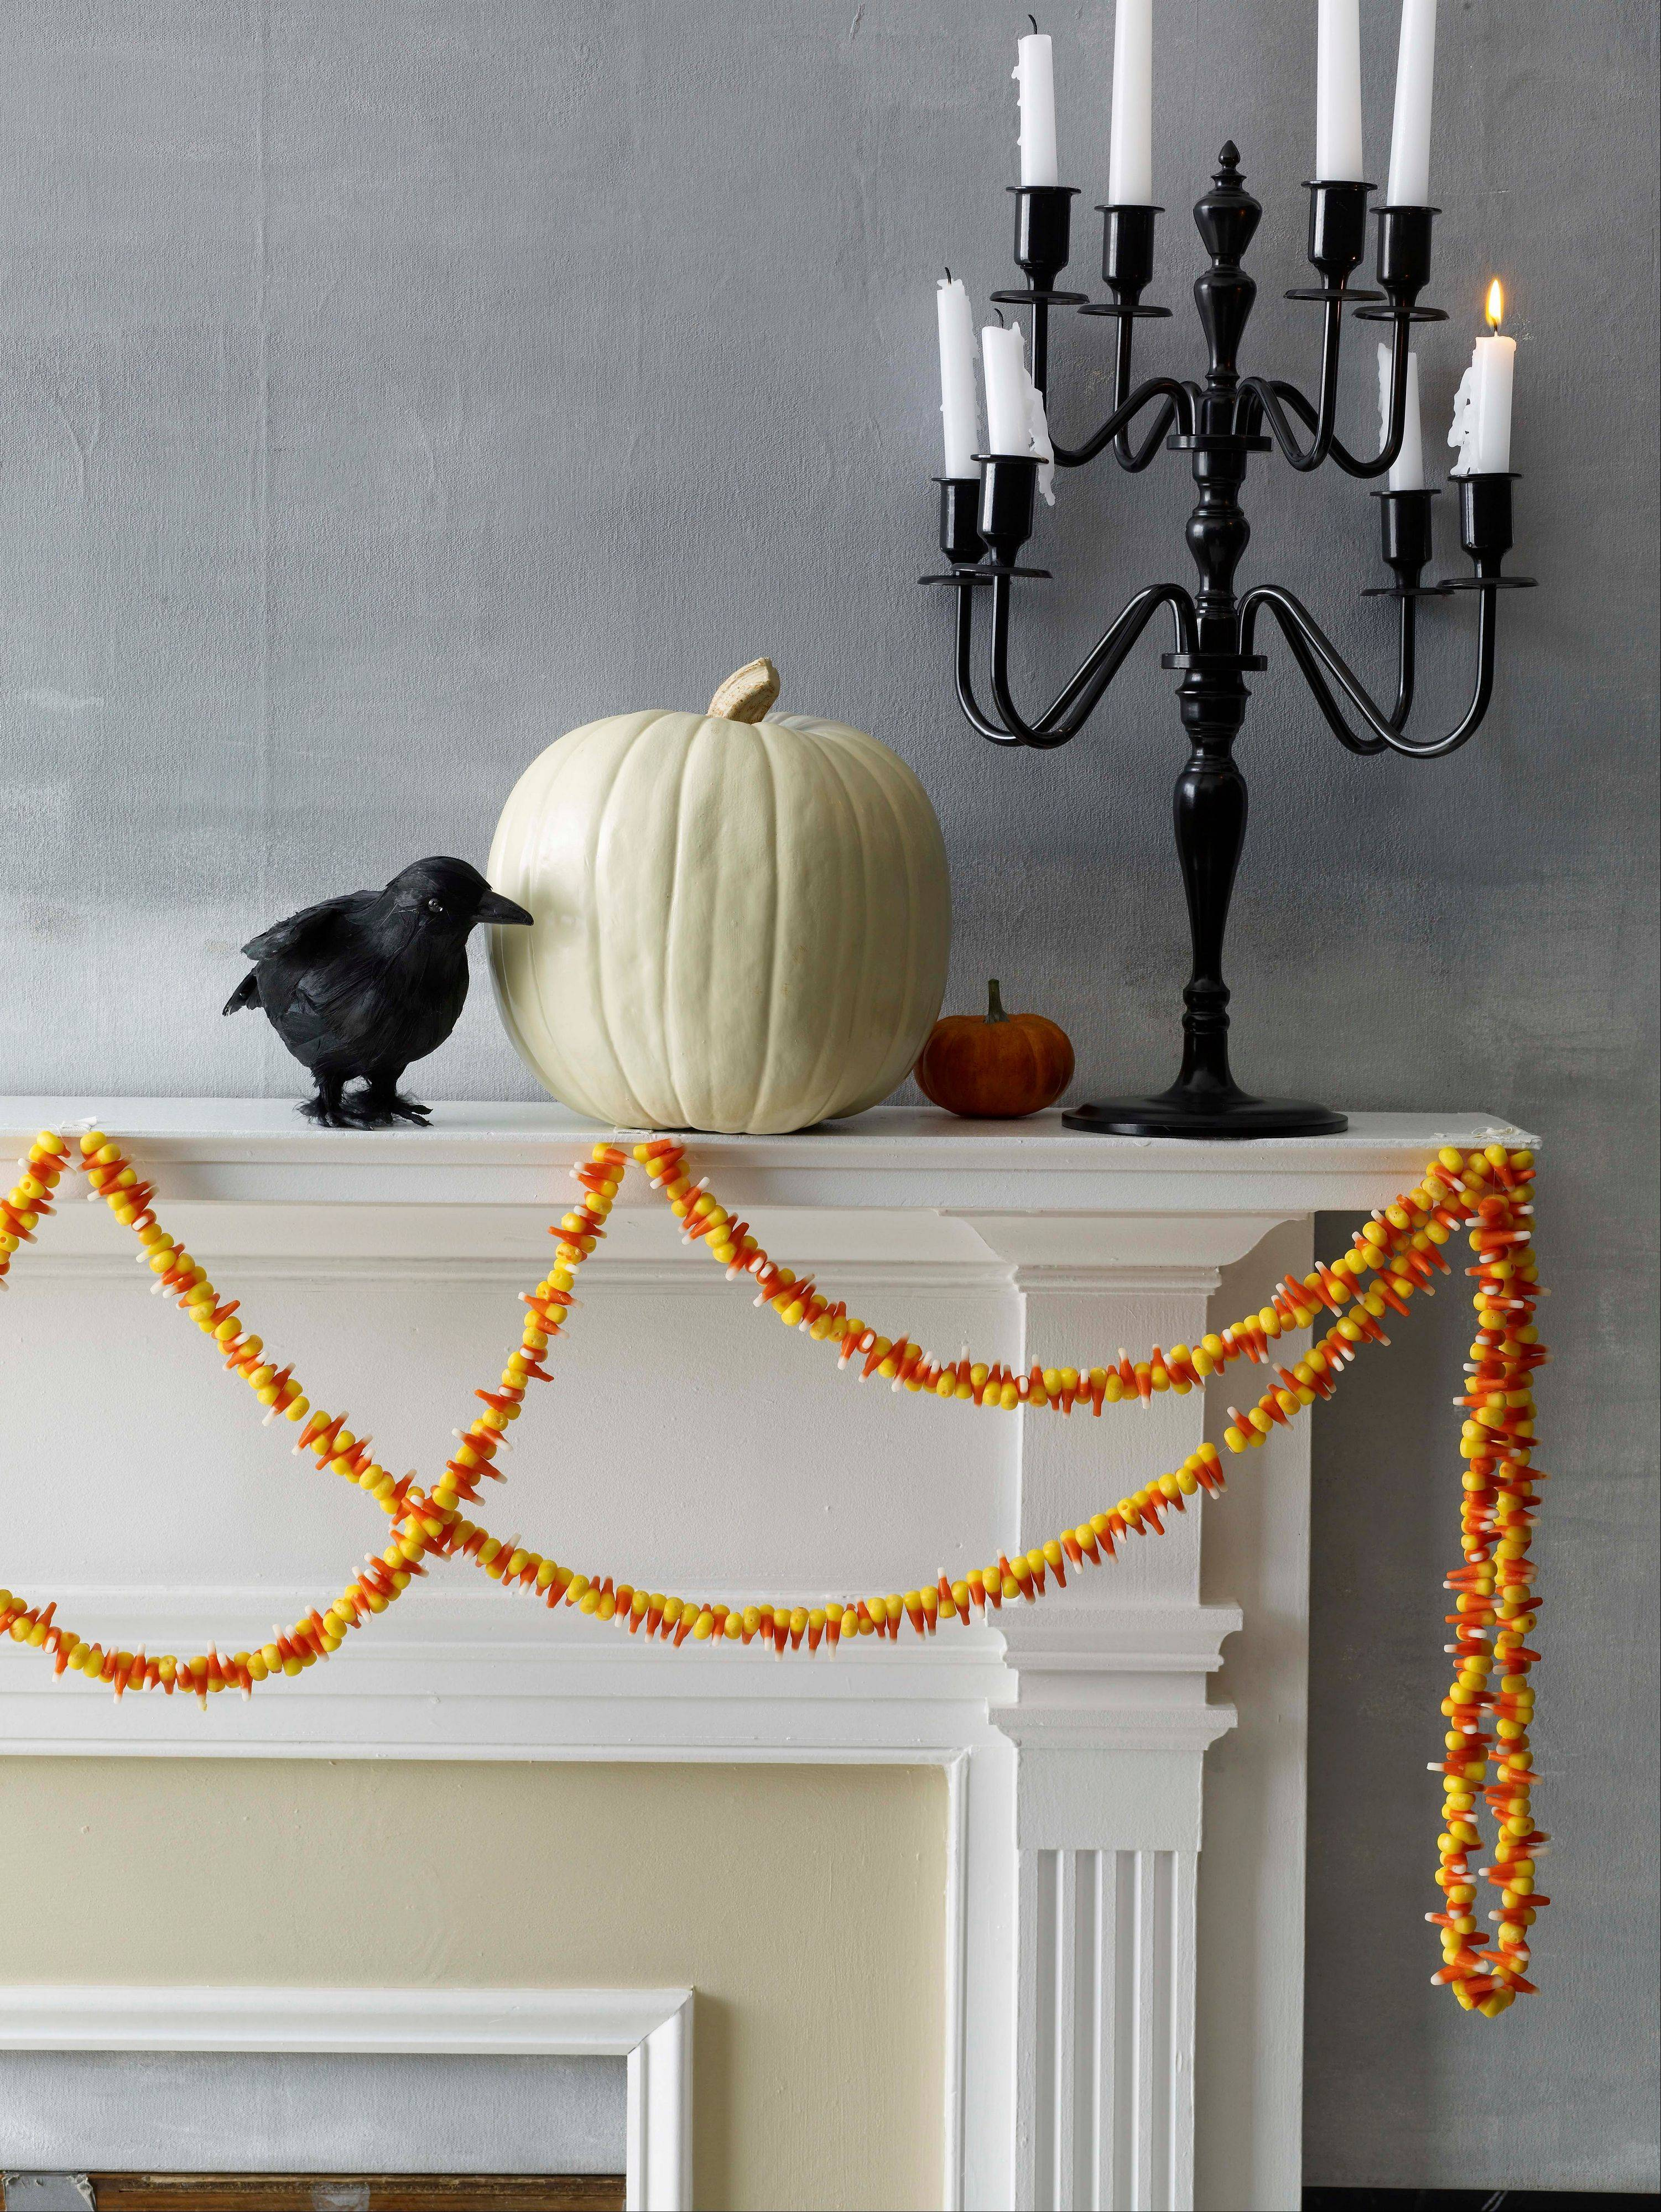 A garland threaded with candy corn makes a colorful decoration for Halloween.